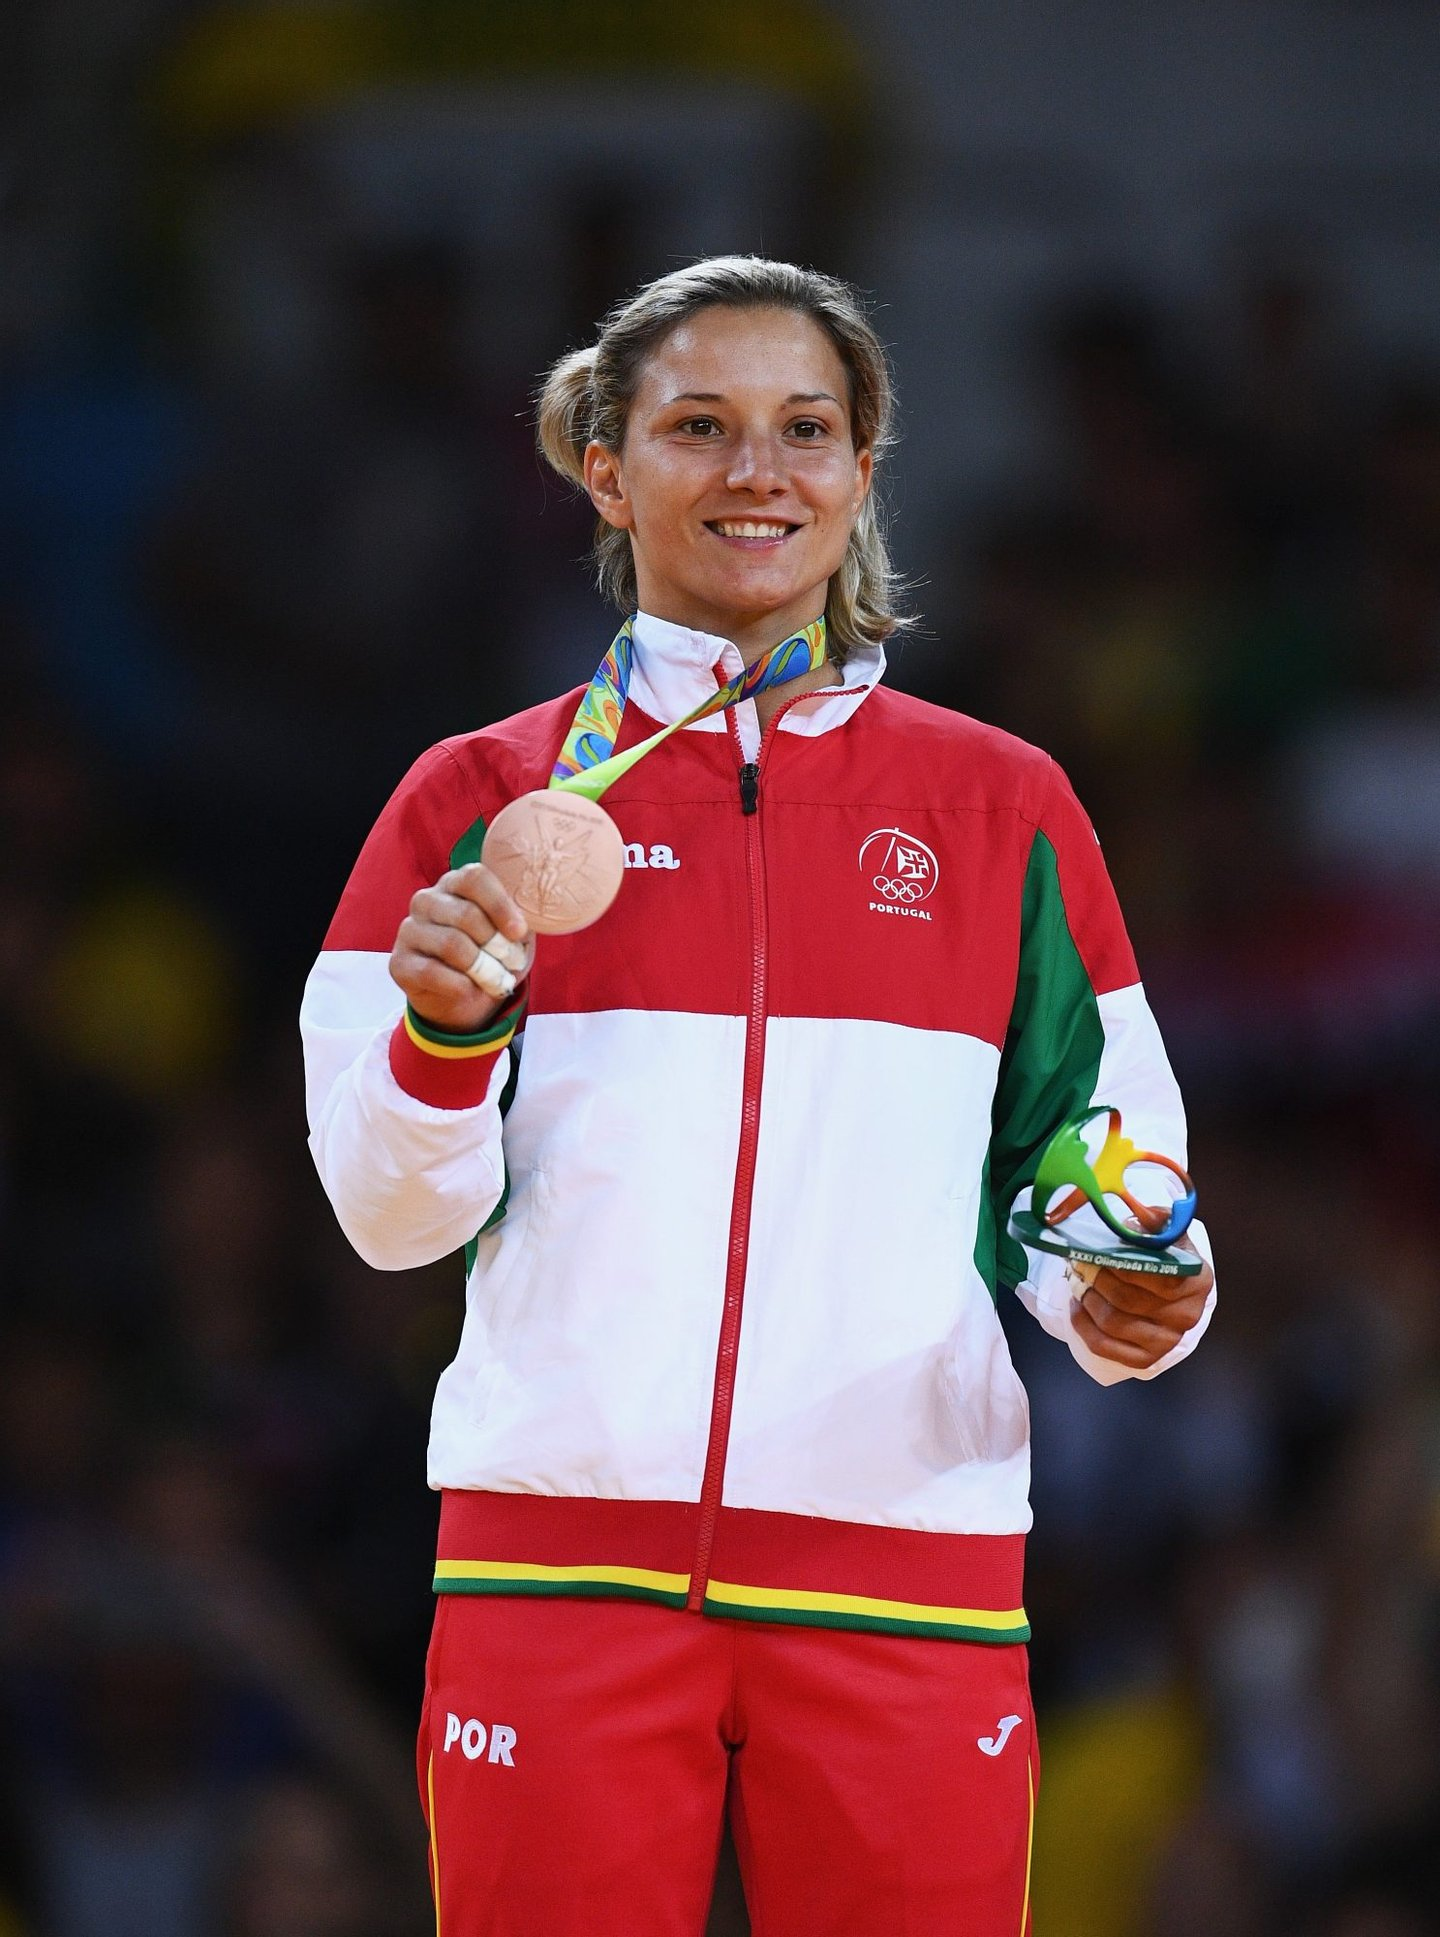 RIO DE JANEIRO, BRAZIL - AUGUST 08: Bronze medalist Telma Monteiro celebrates on the podium after the Women's -57 kg Judo Contest on Day 3 of the Rio 2016 Olympic Games at Carioca Arena 2 on August 8, 2016 in Rio de Janeiro, Brazil. (Photo by David Ramos/Getty Images)